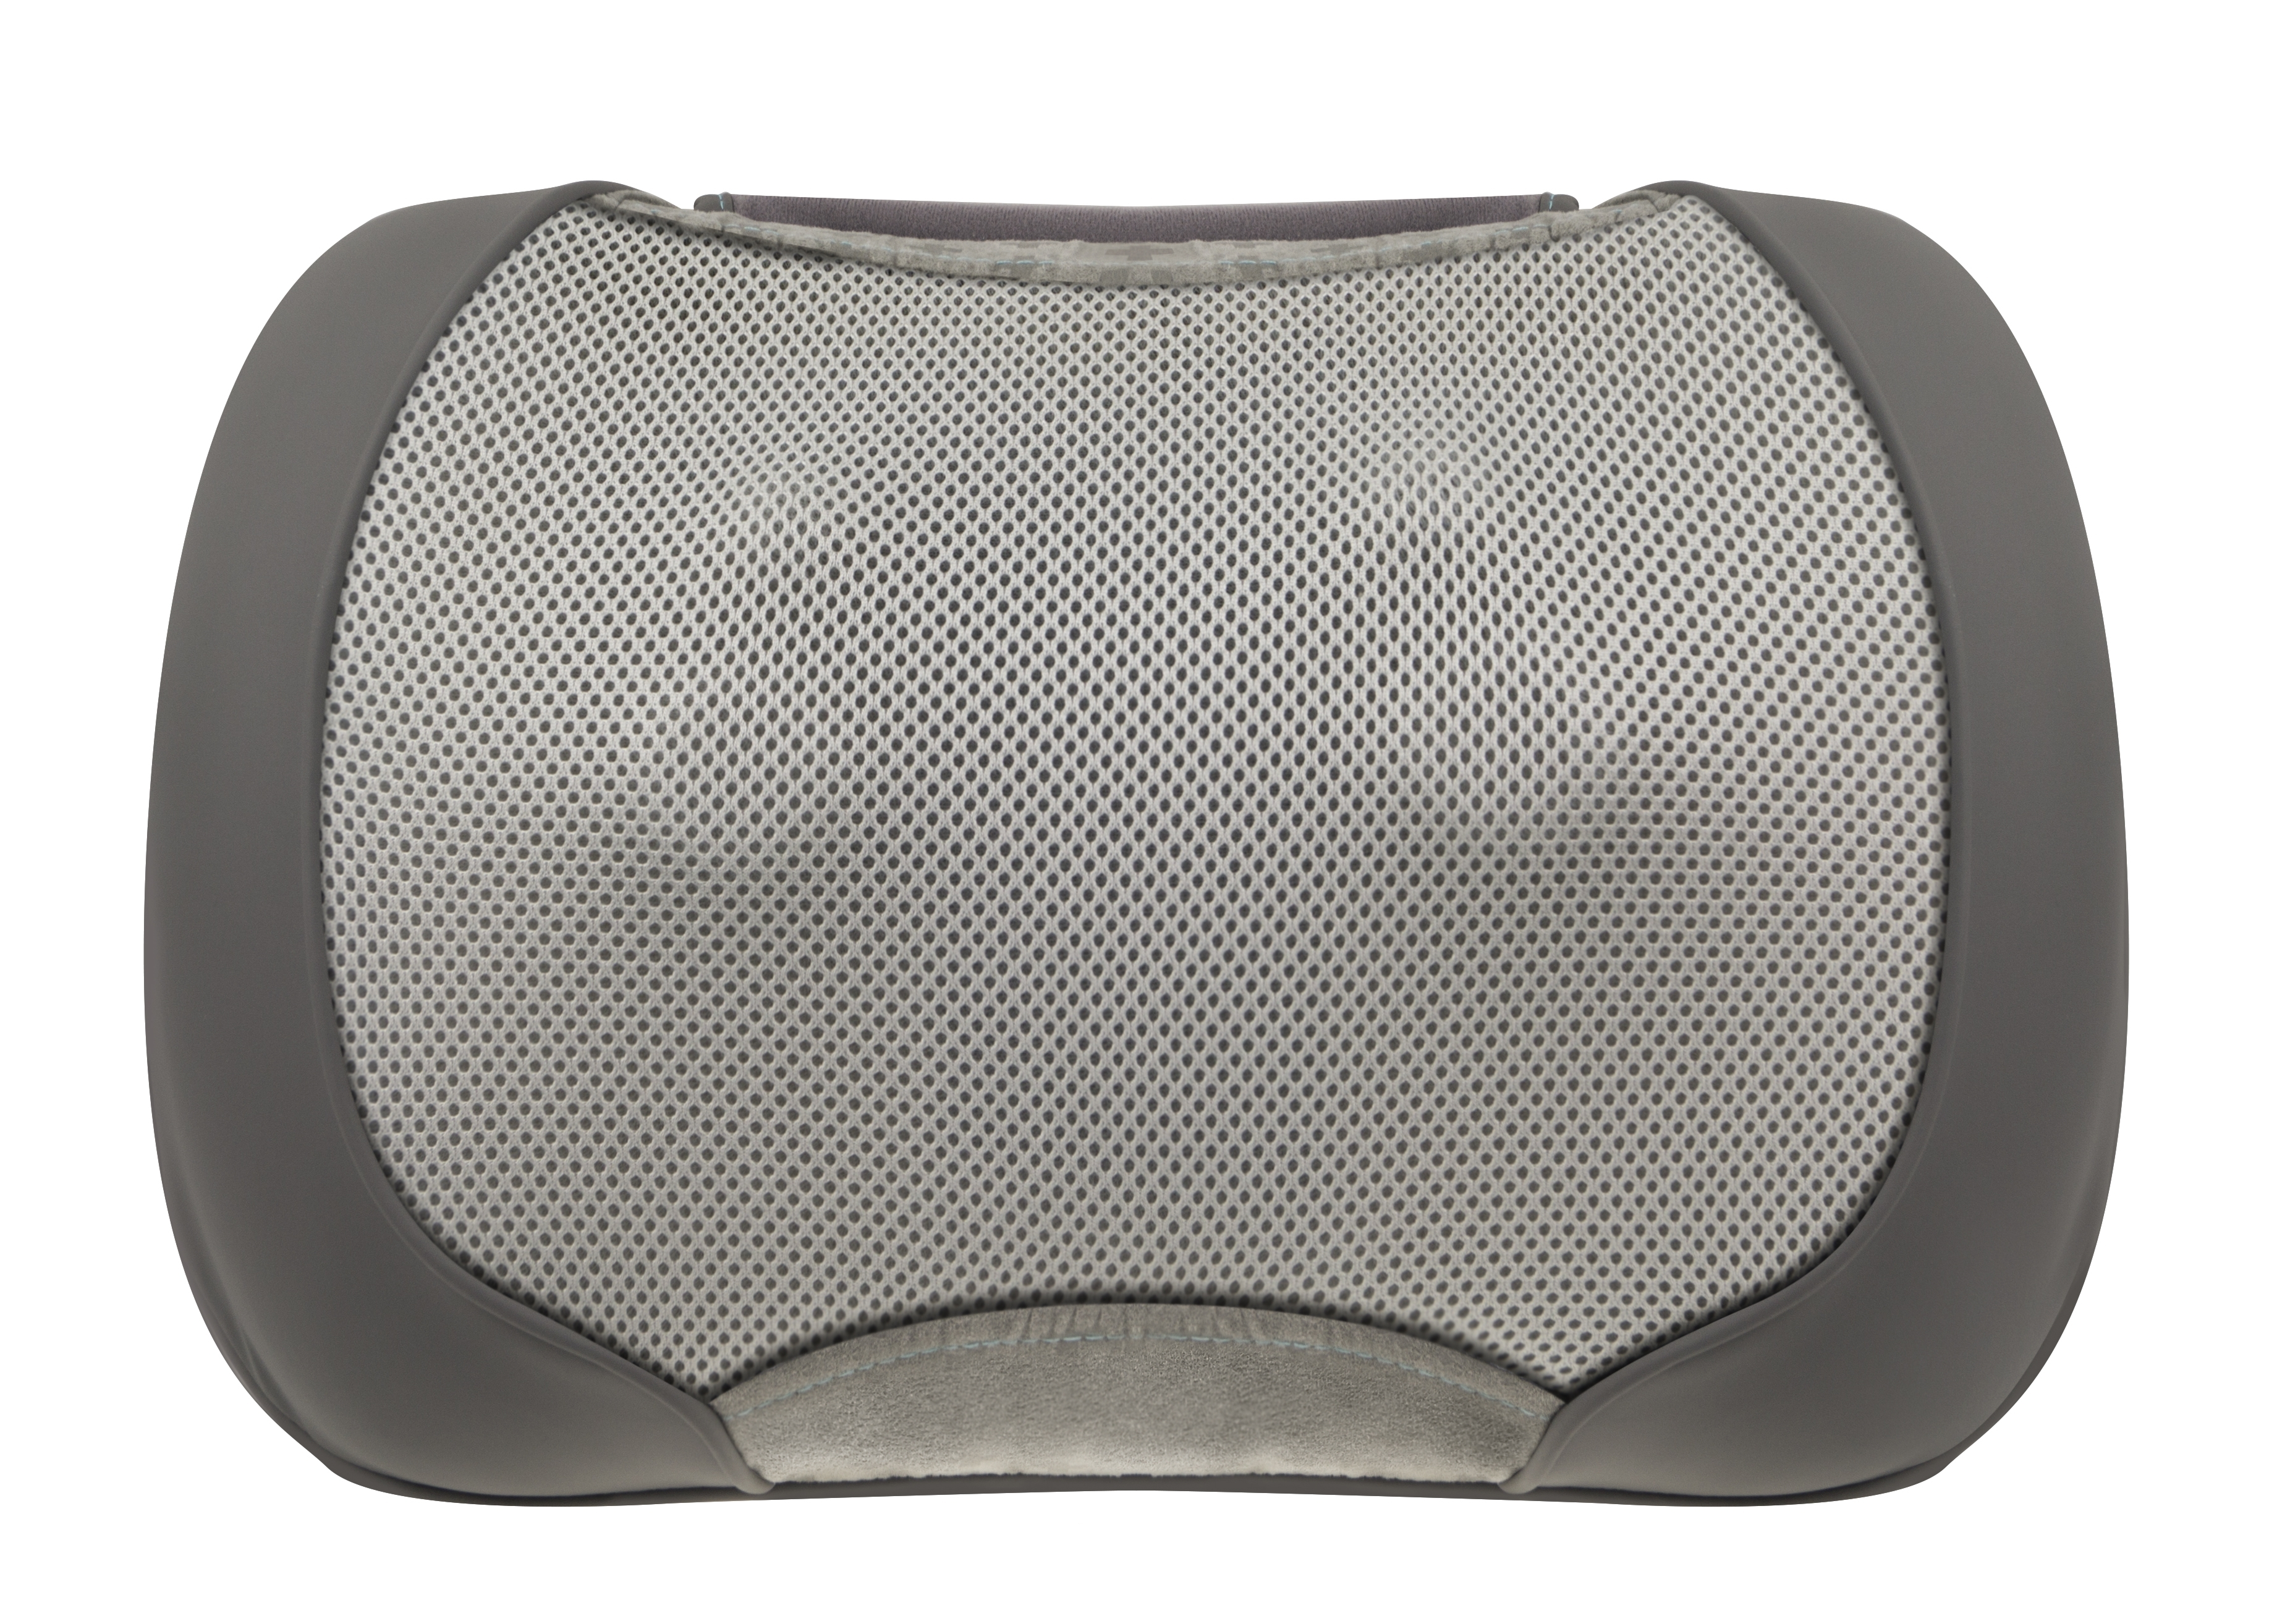 Medisana Electronic Heated Shiatsu Massage Pillow For Back